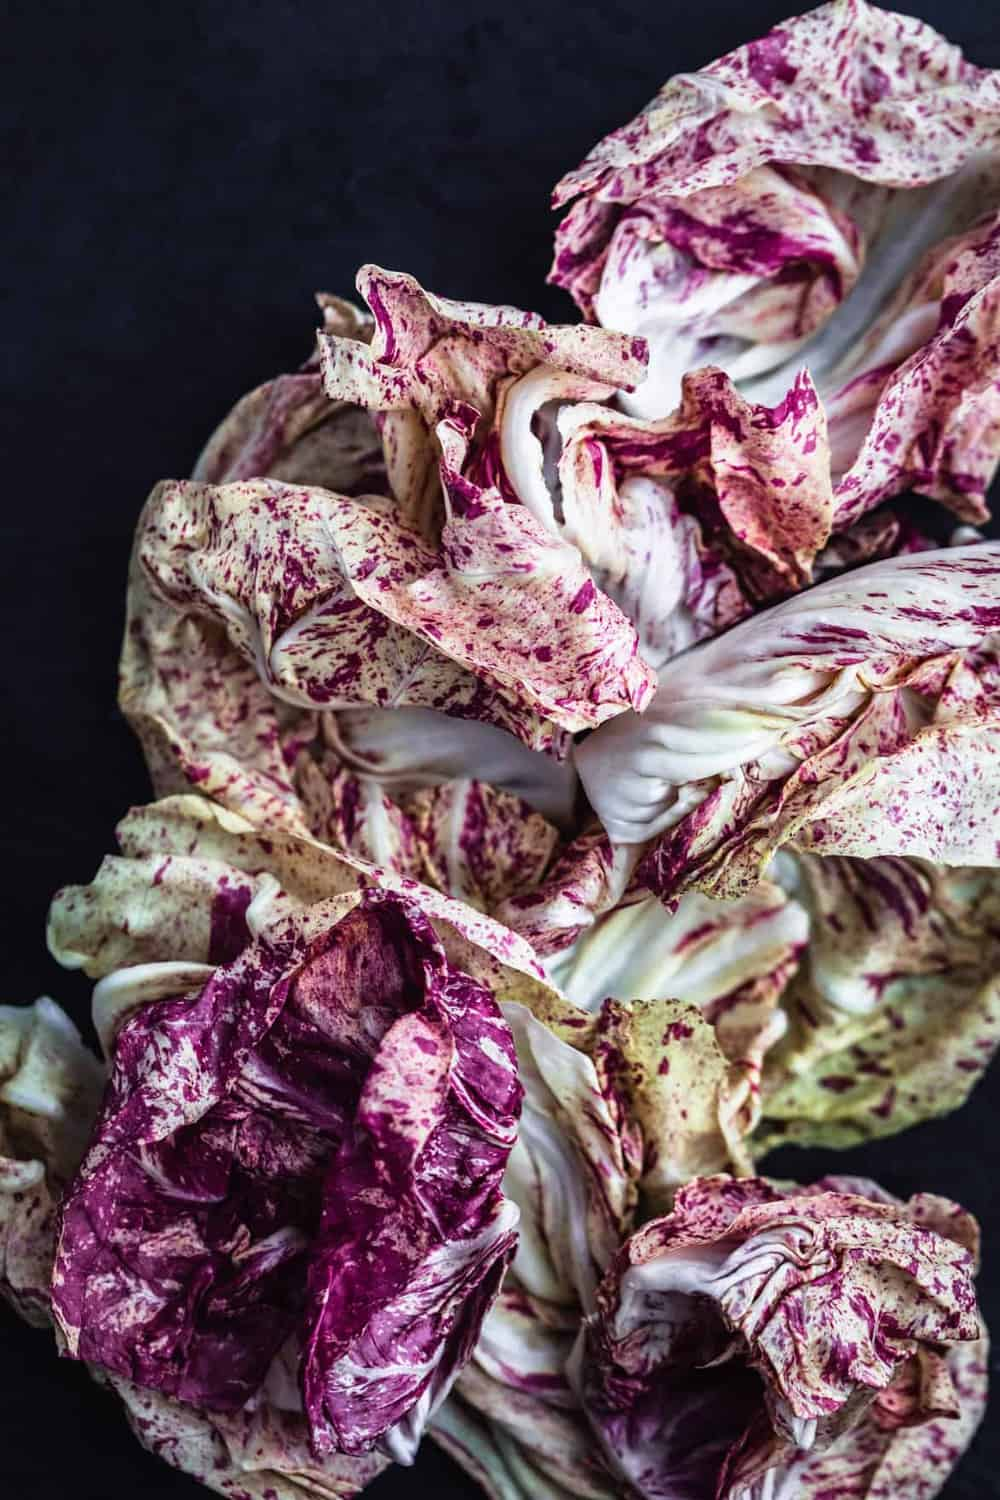 Ingredient shot of castelfranco chicory.